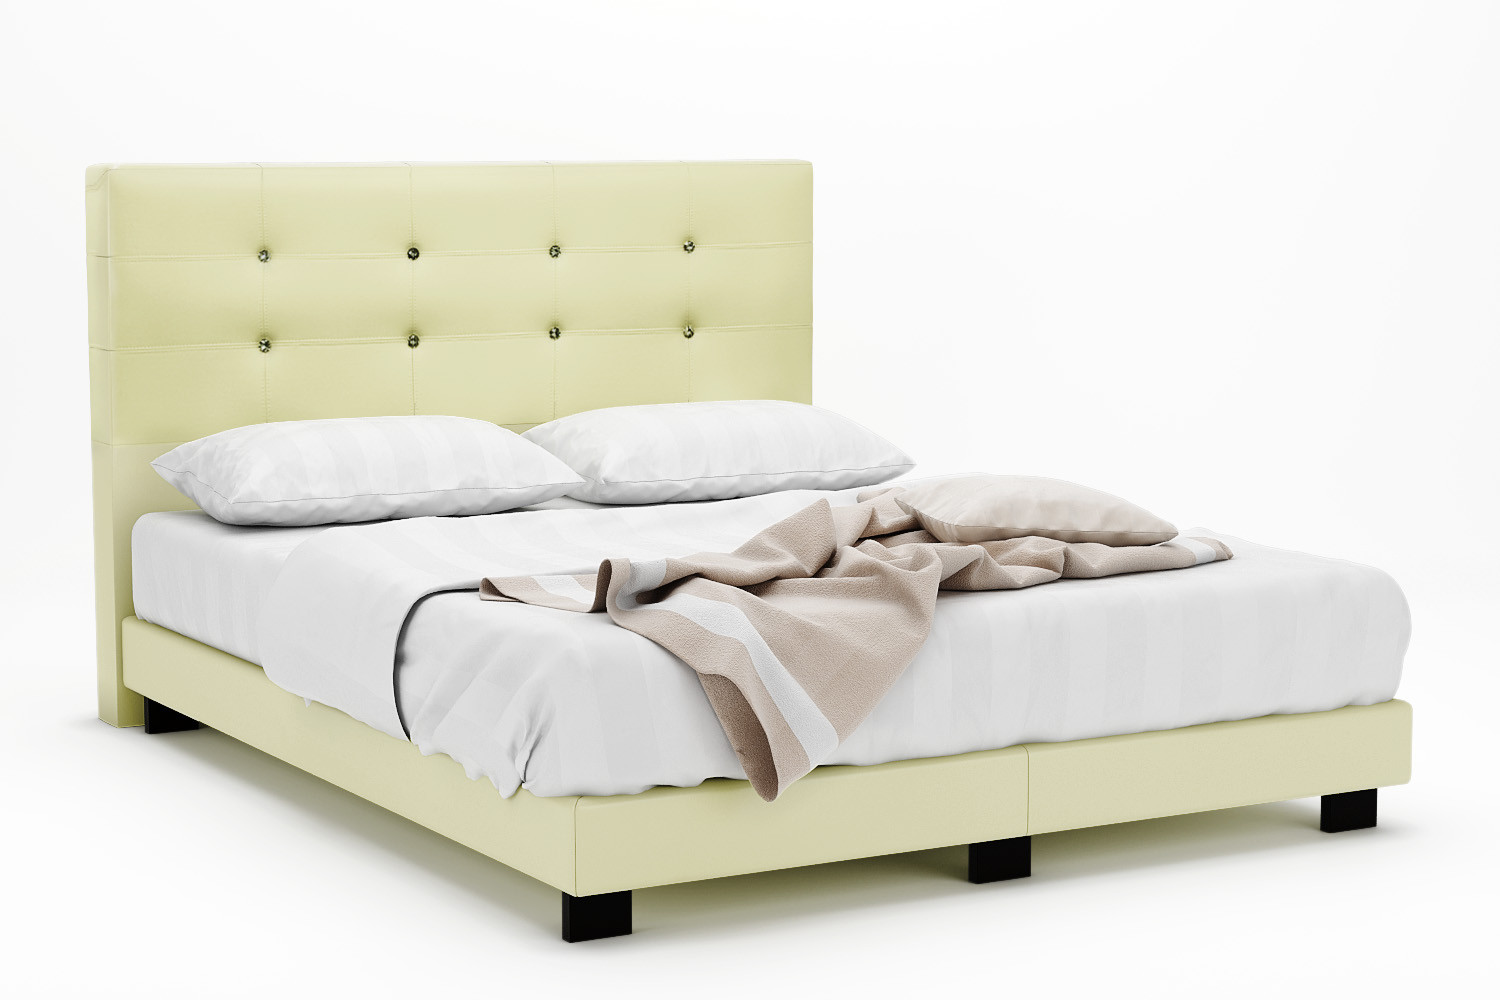 houston faux leather bed frame queen - Bed Frames Houston